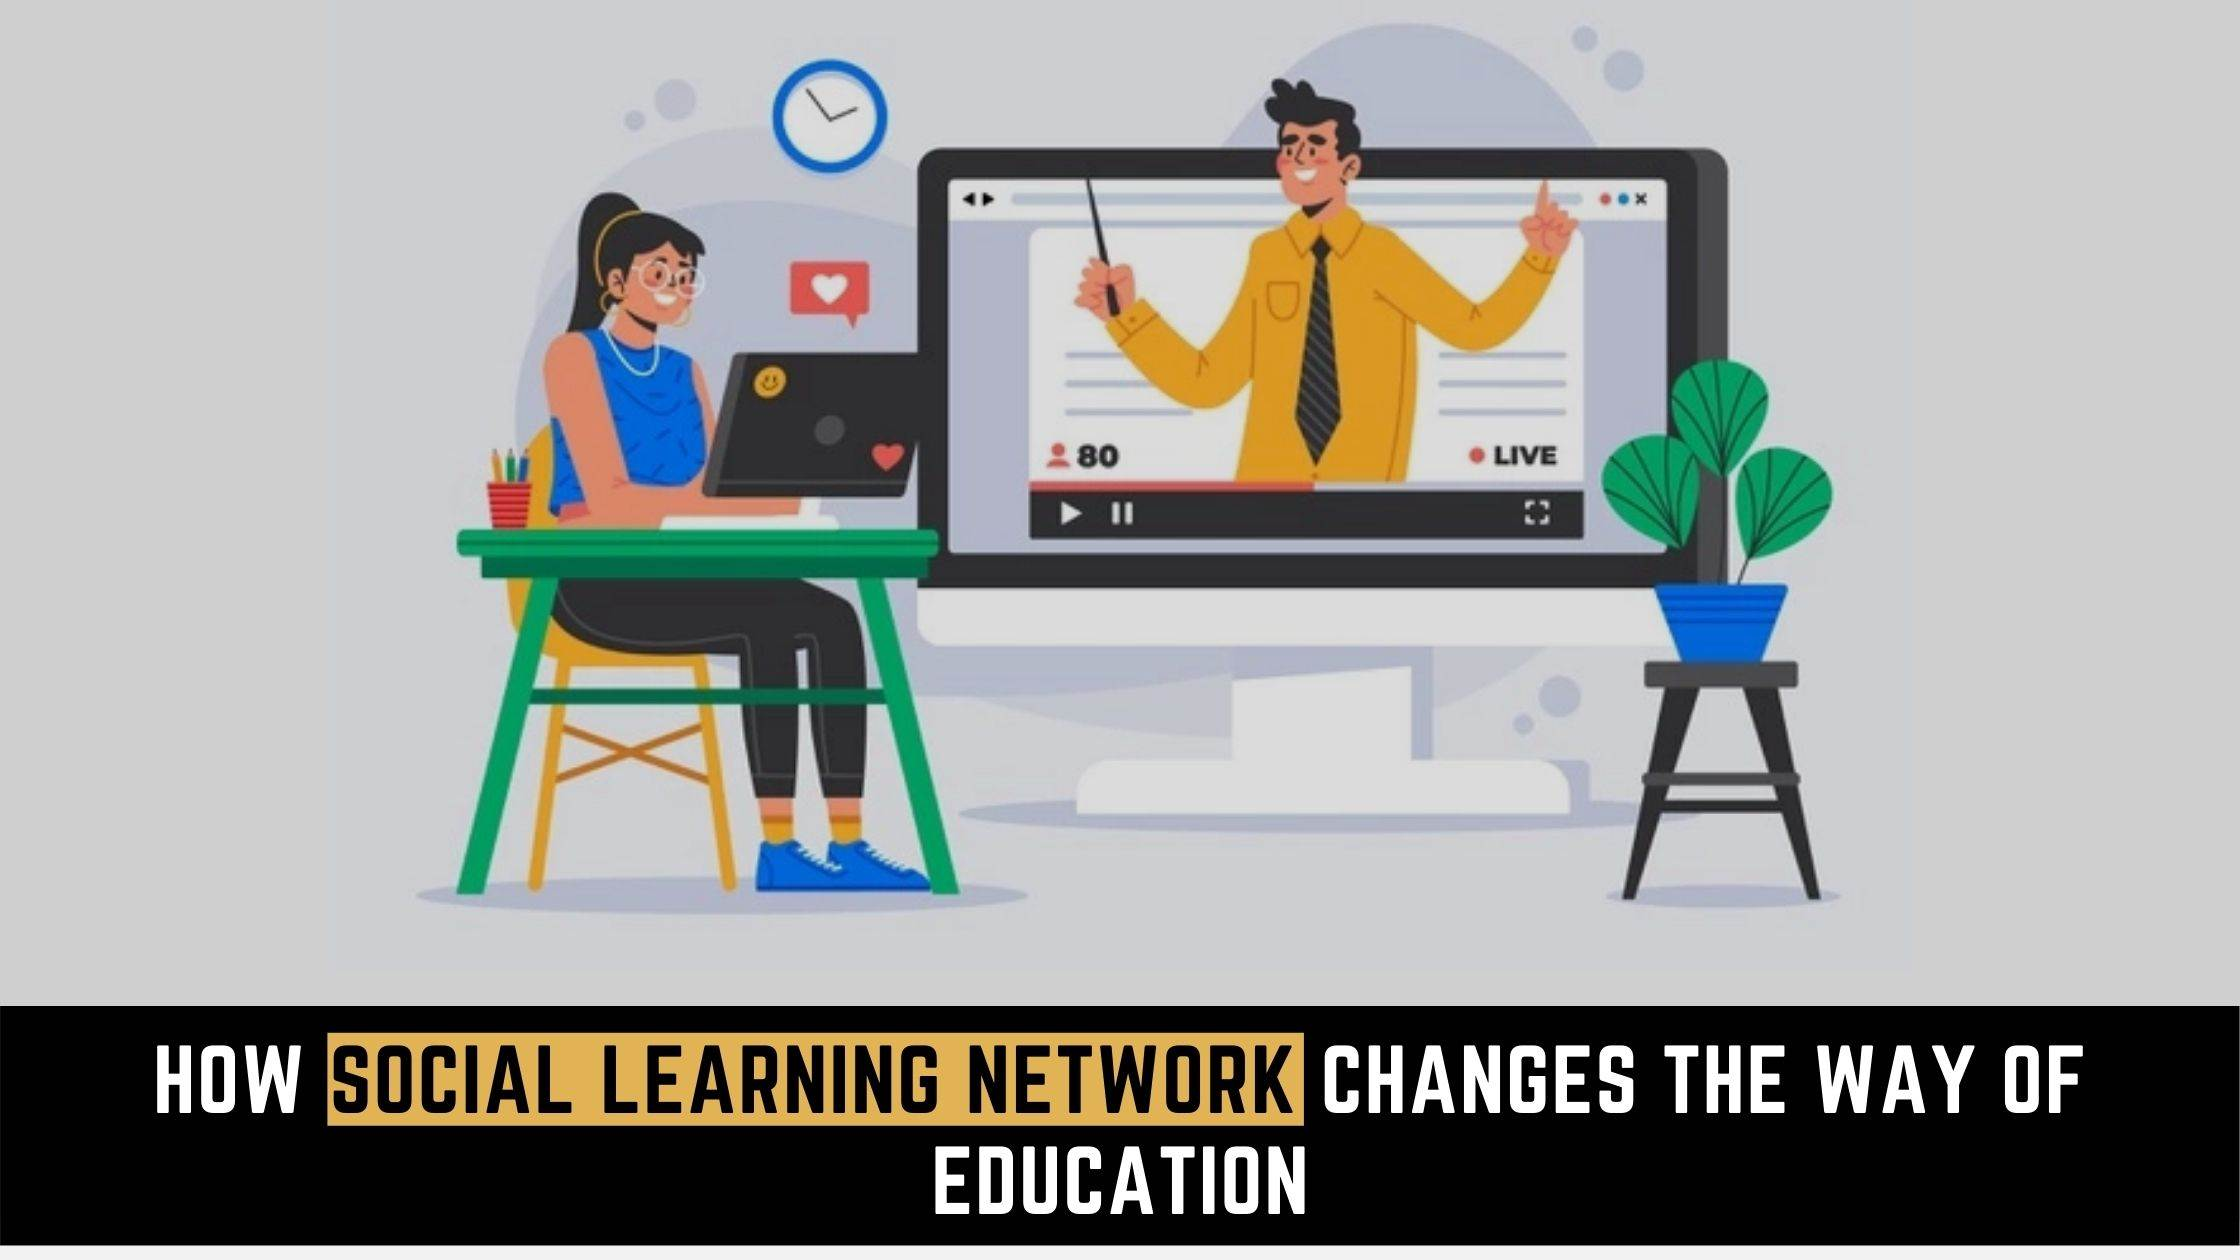 How Social learning network changes the way of education